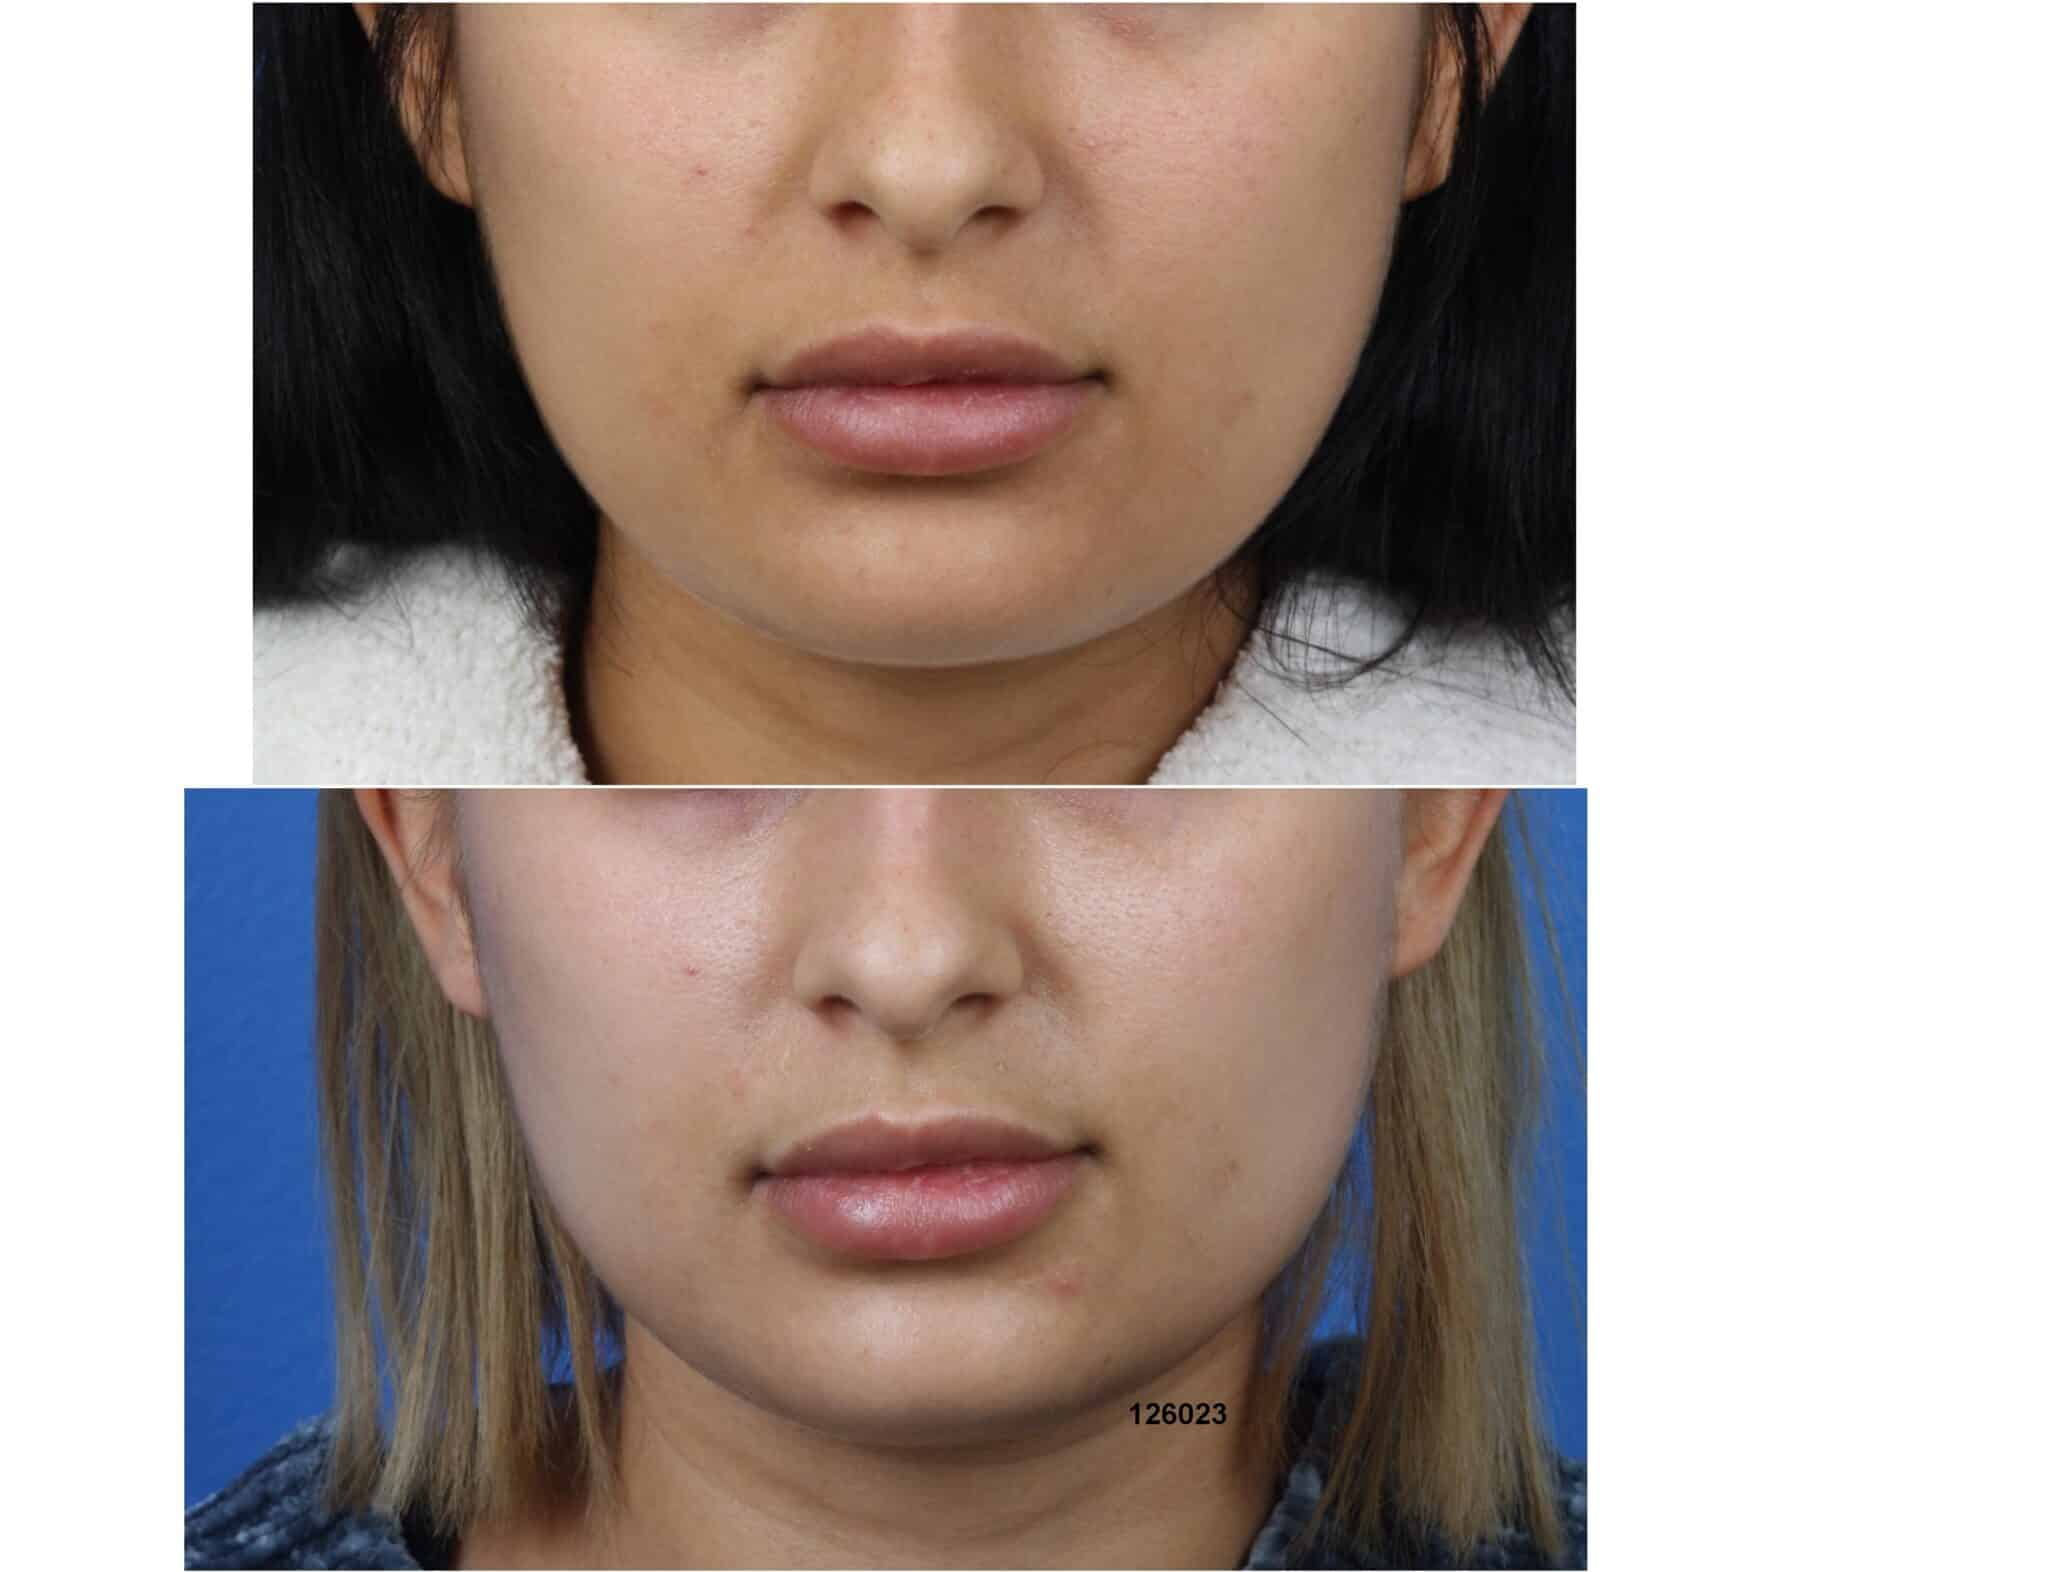 Buccal fat removal with Dr. Miller